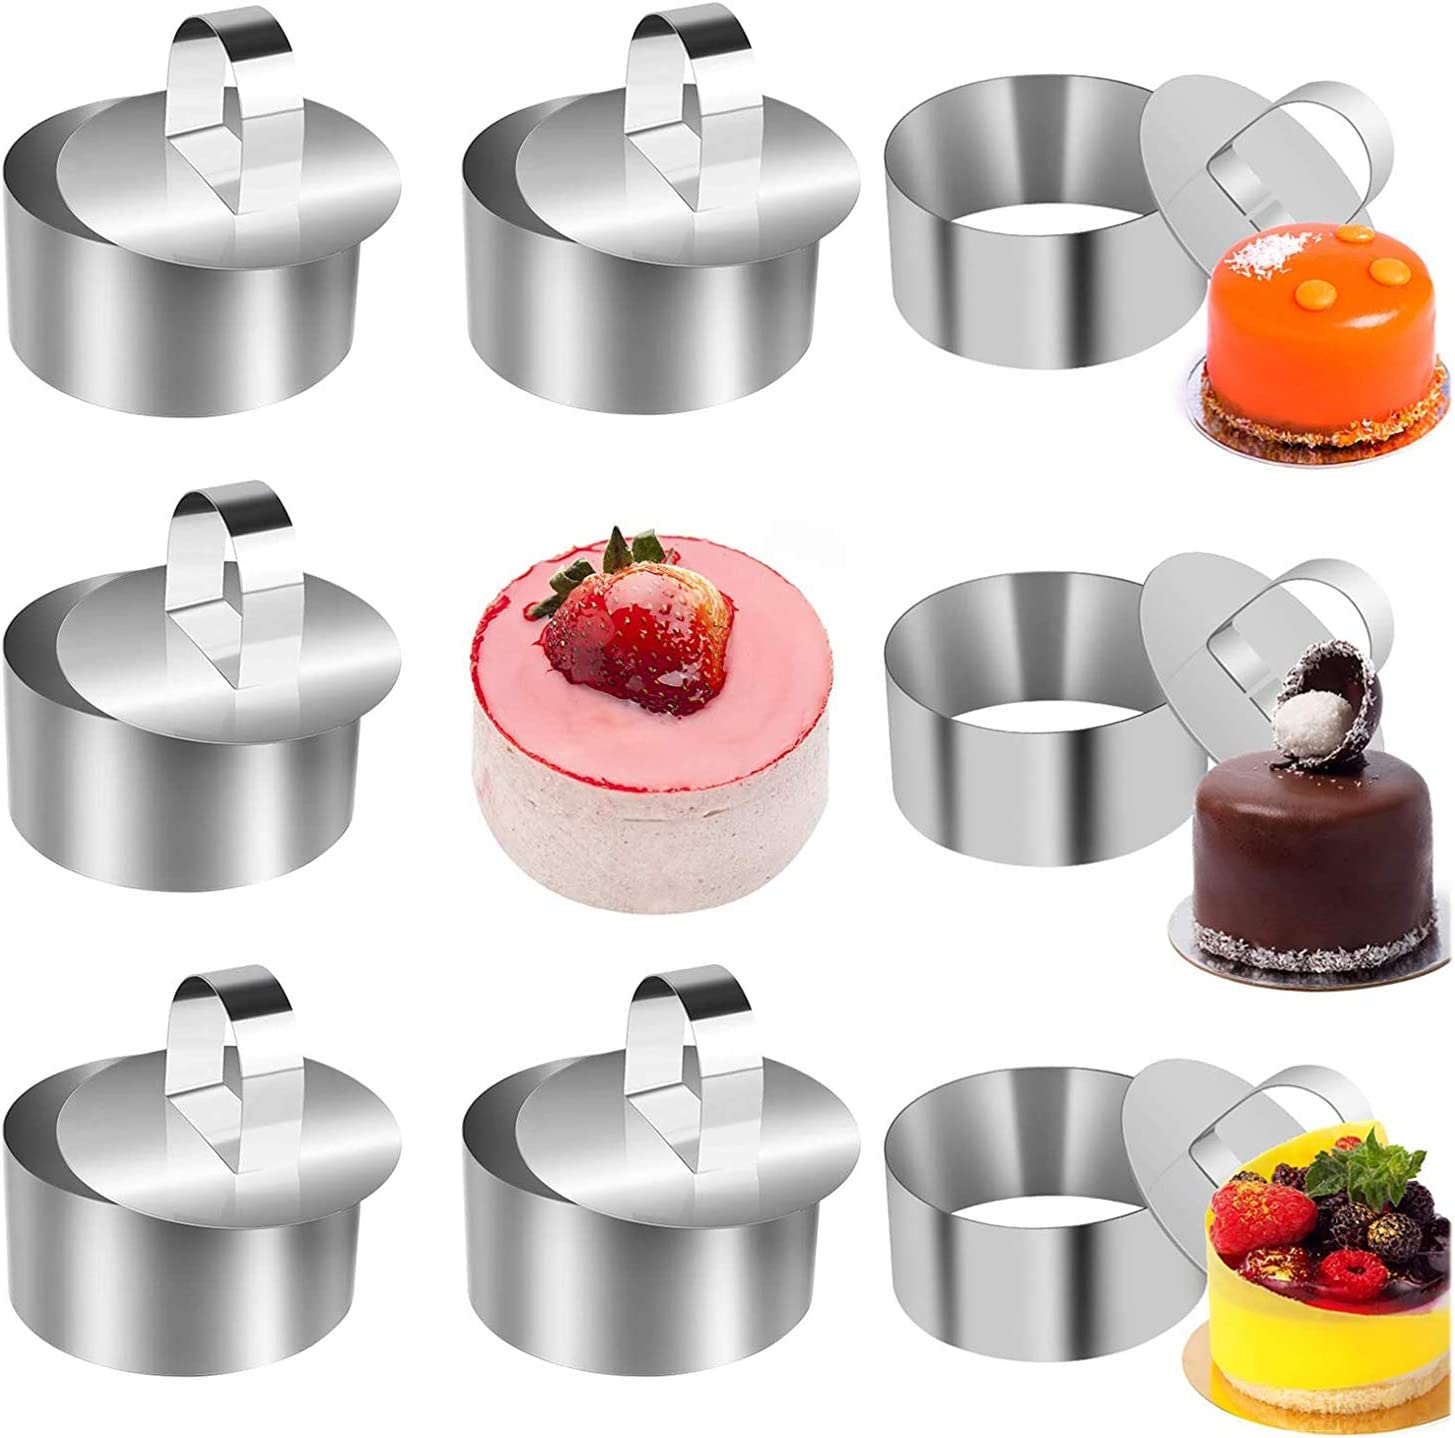 Cake Rings – 16 PCS Round Stainless Steel Mousse Molds for Cooking 8 Pastry Rings 8 Pushers Baking Tools for Kitchen